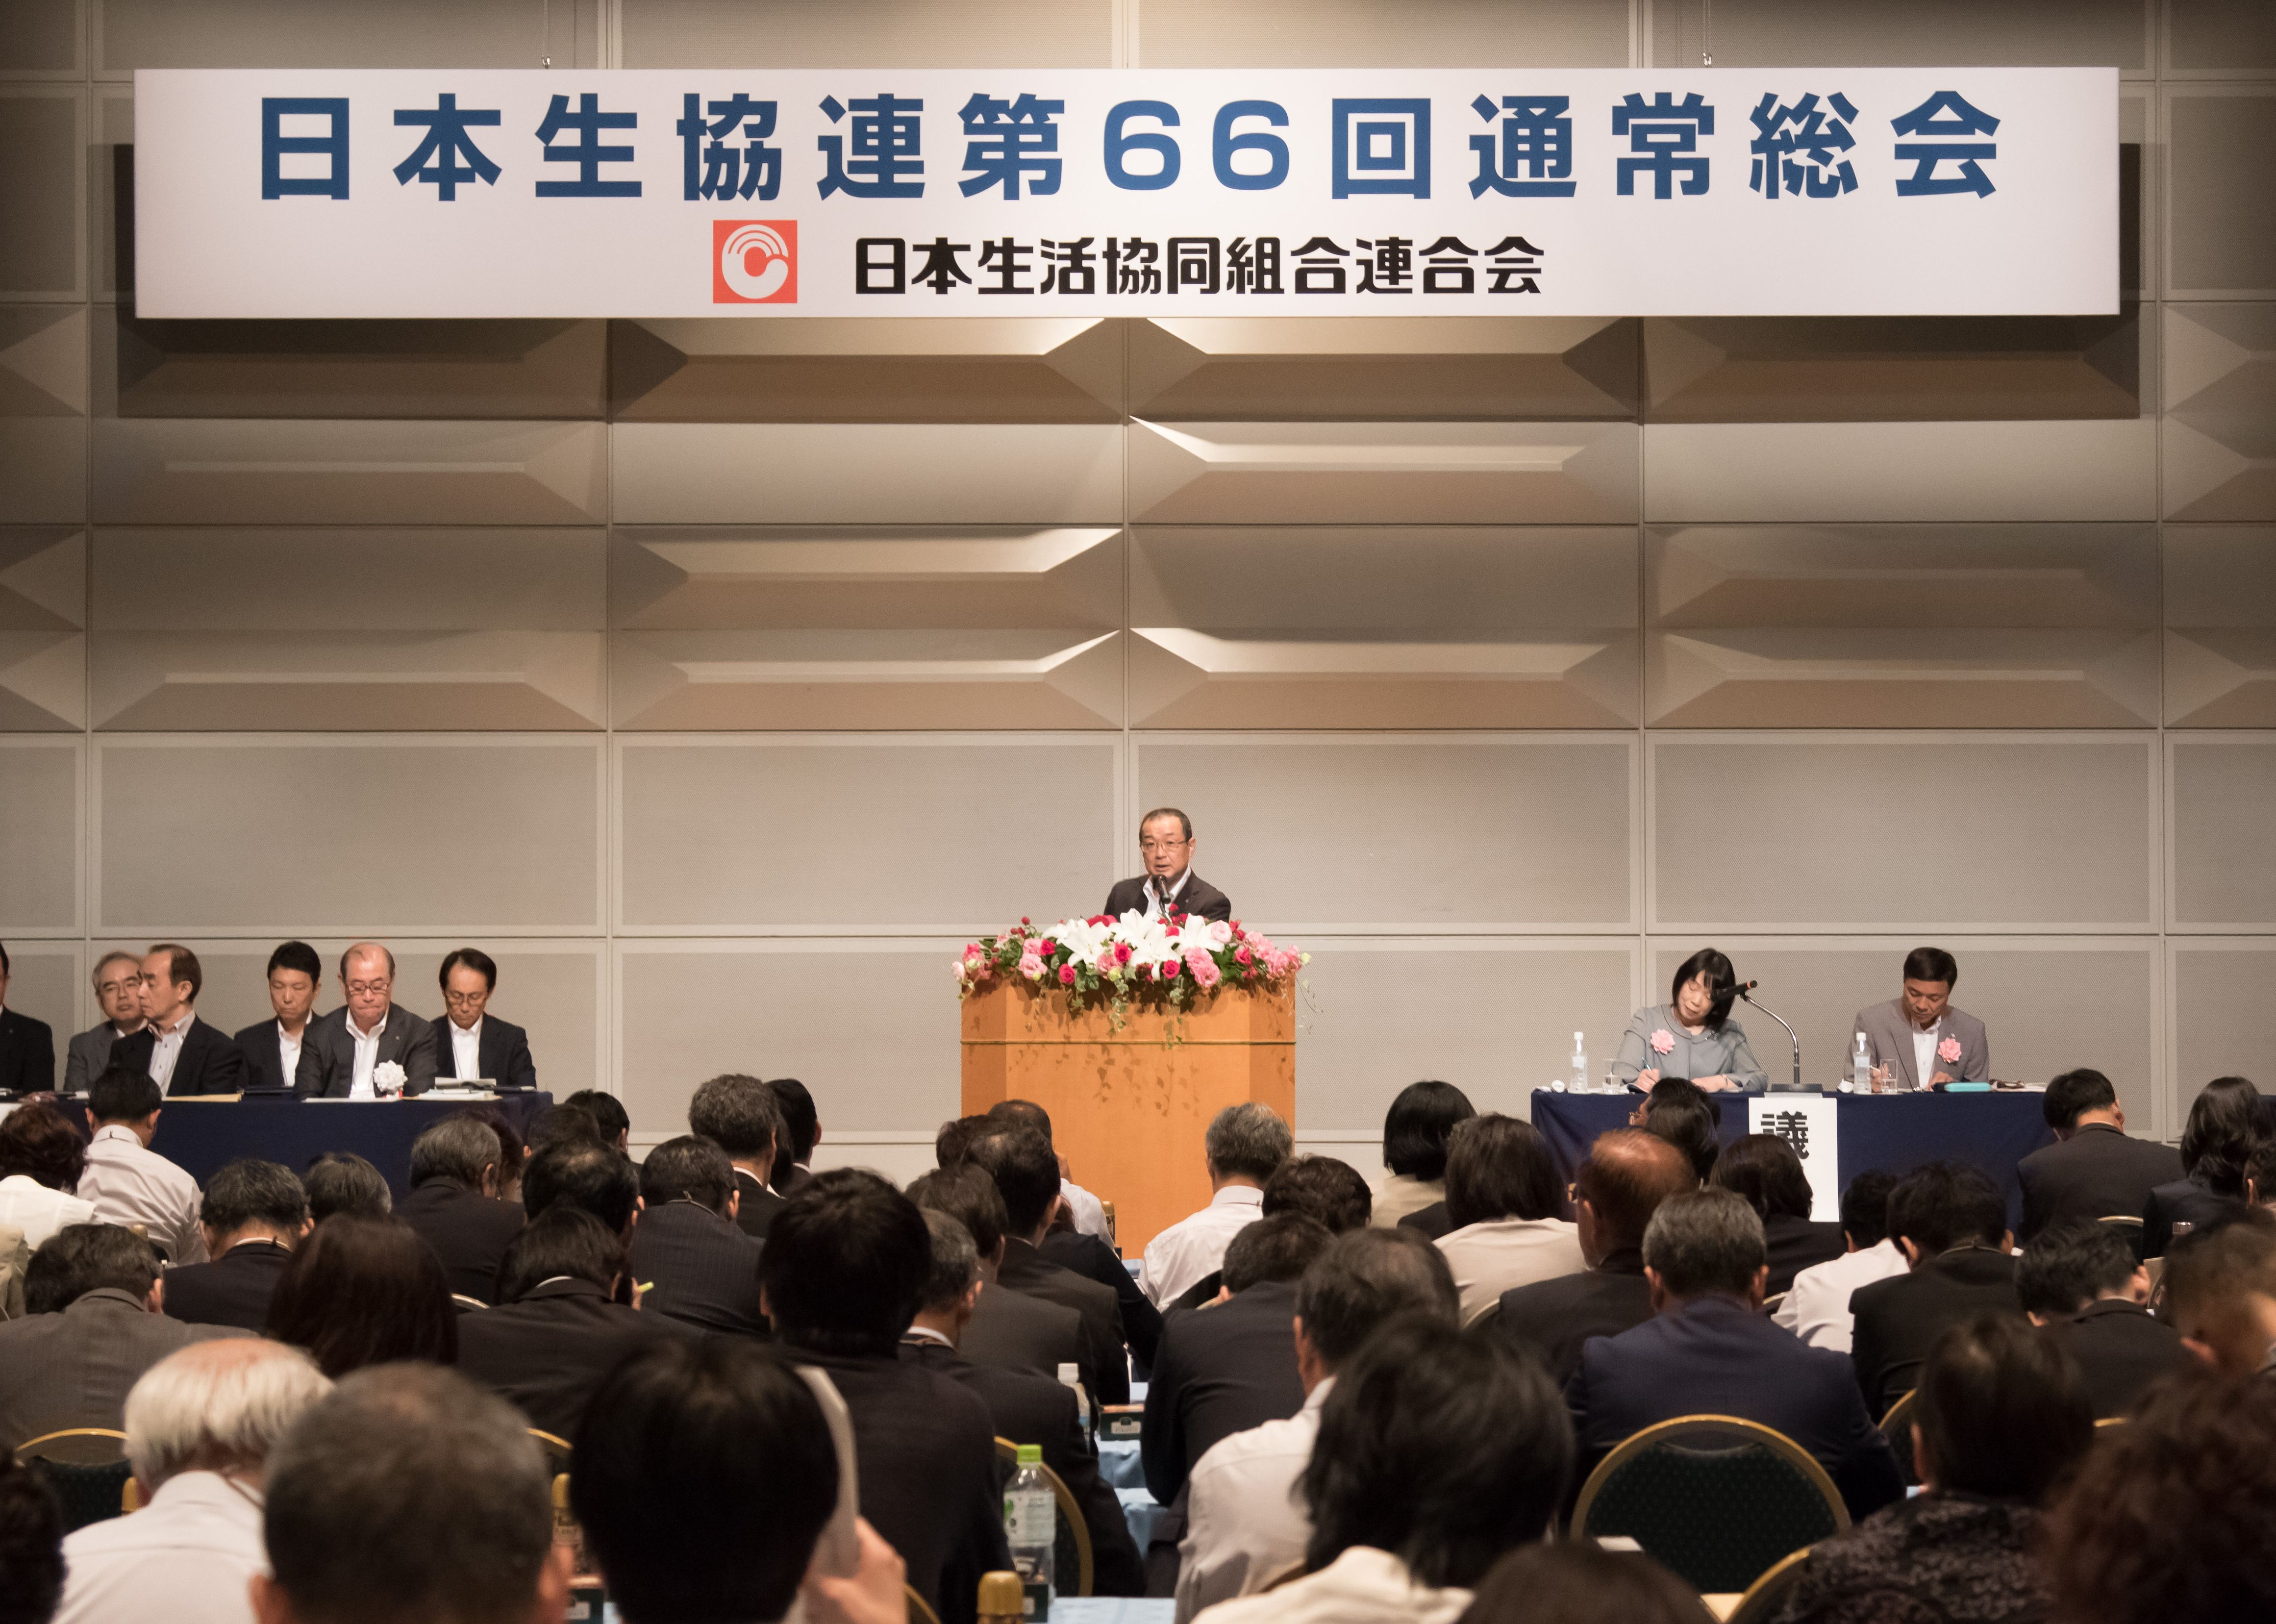 JCCU held Annual General Assembly 2016